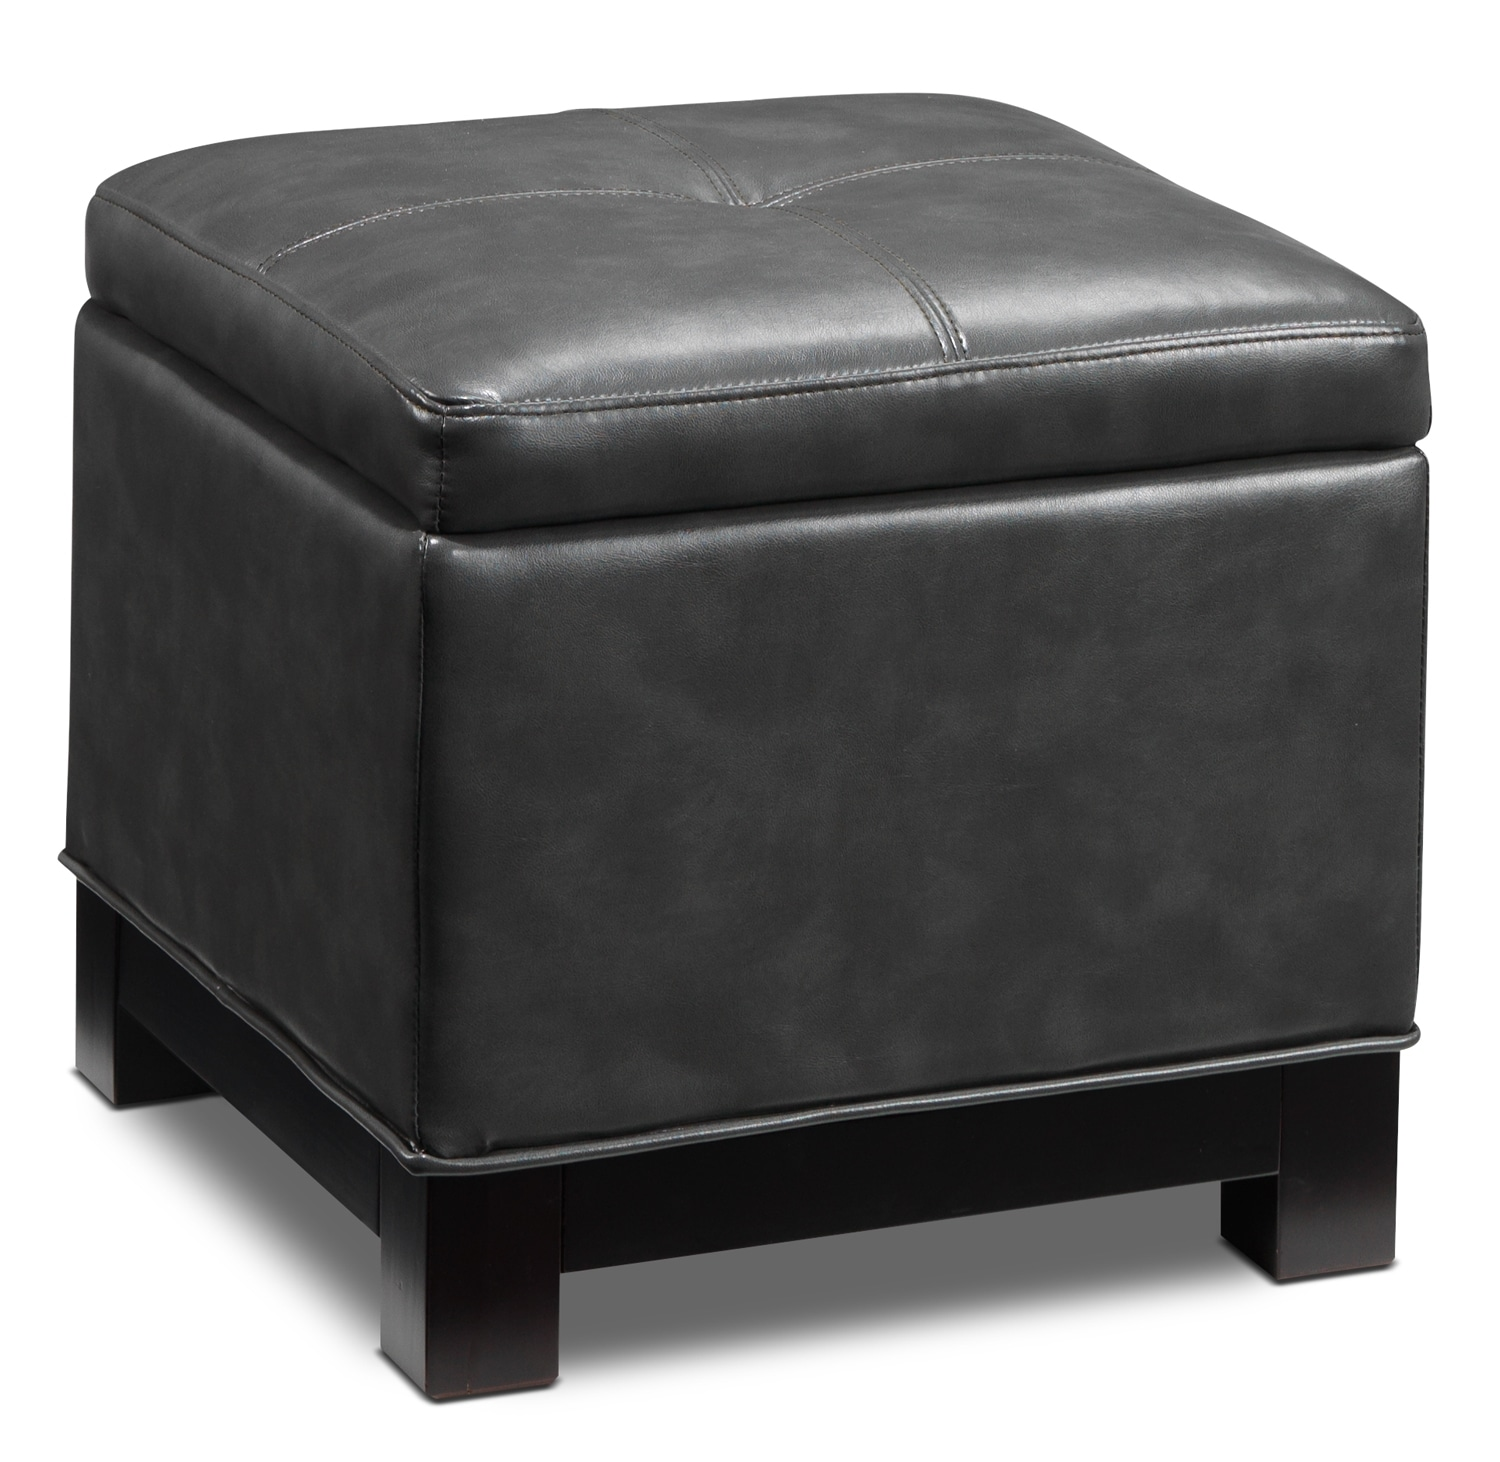 Living Room Furniture - Atlanta Storage Ottoman - Grey